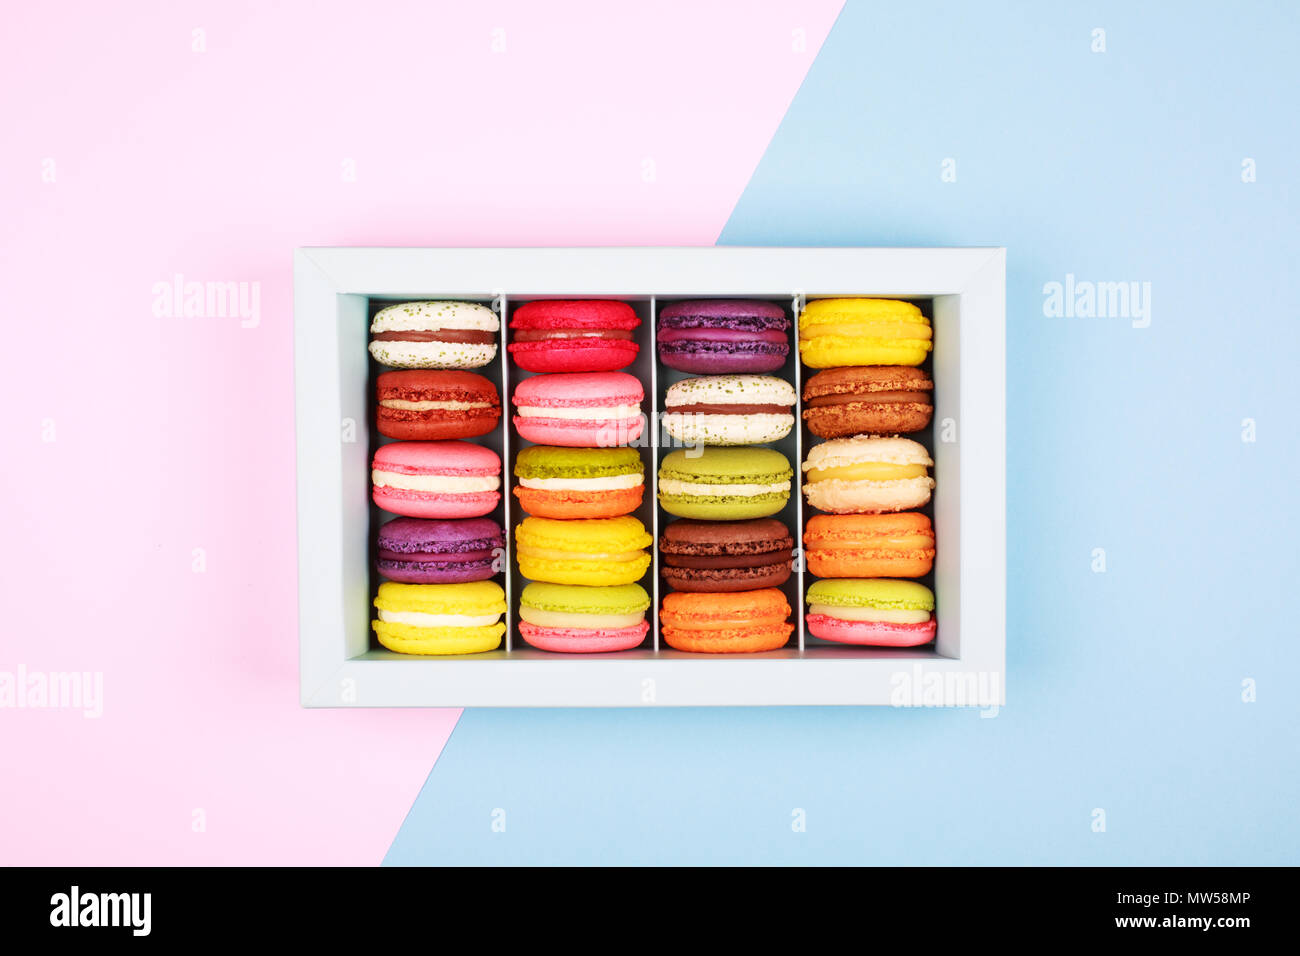 Box of macarons - Stock Image